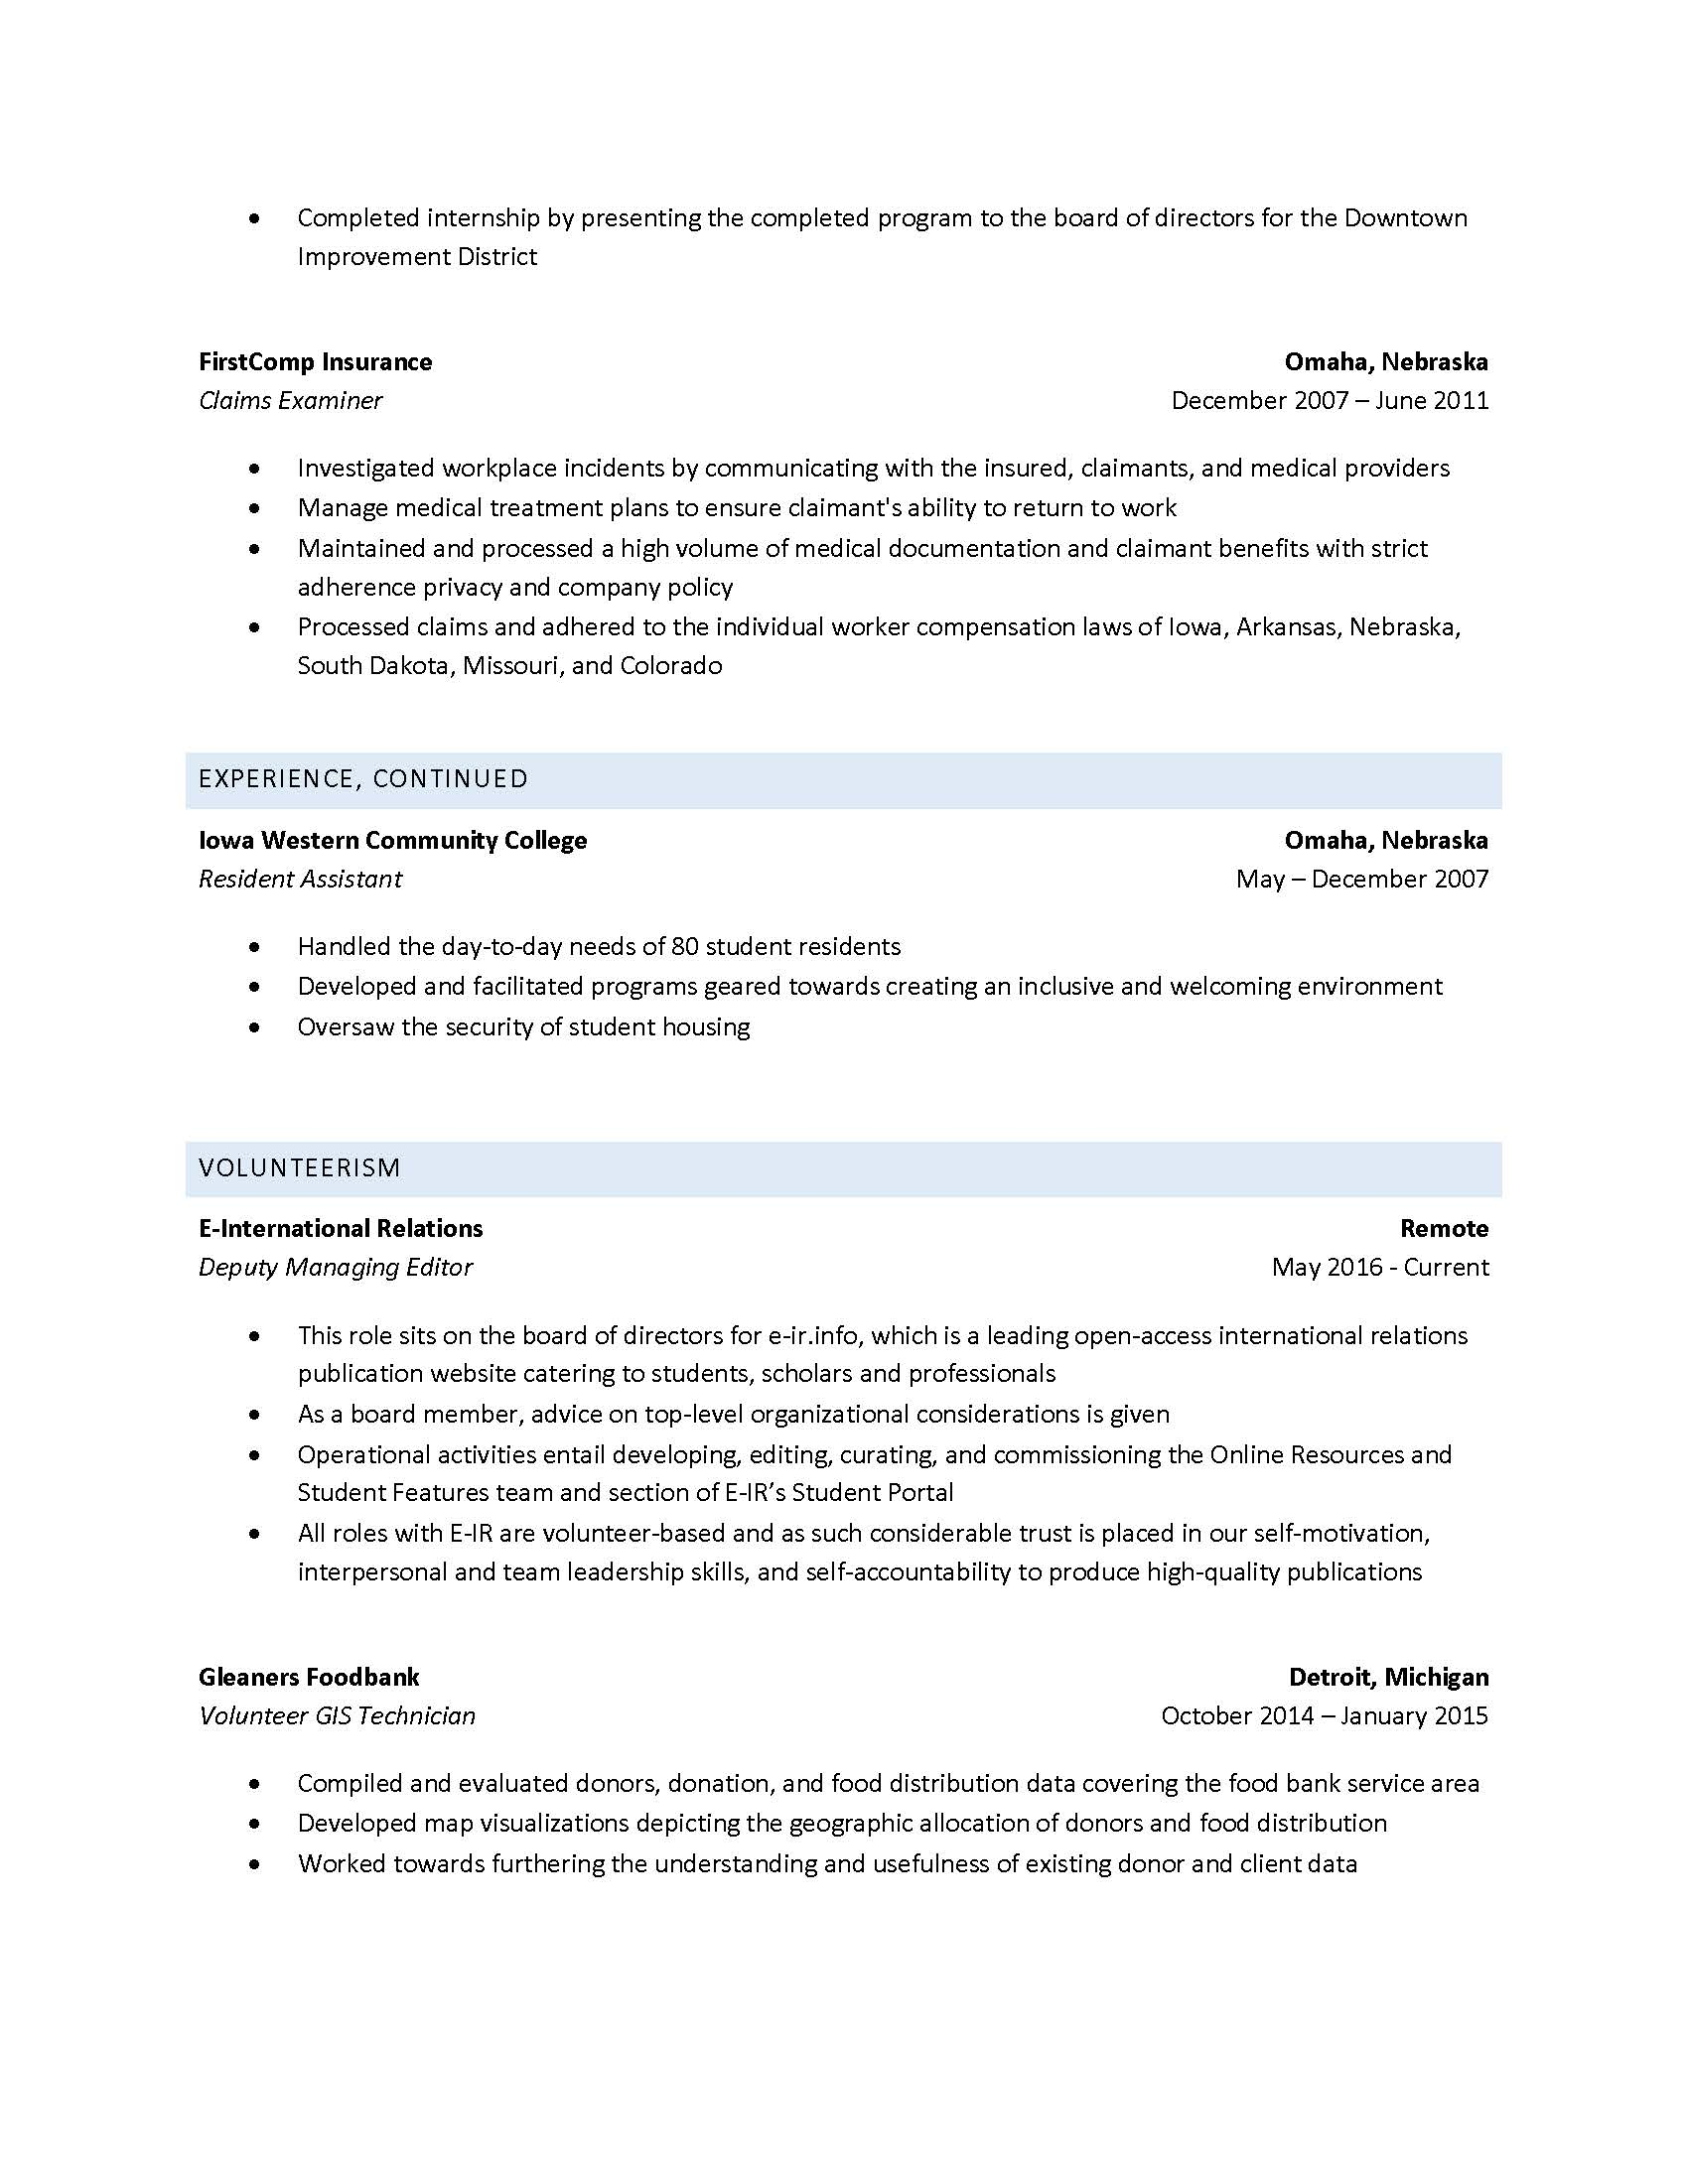 architectural draftsman resume resume for waitress